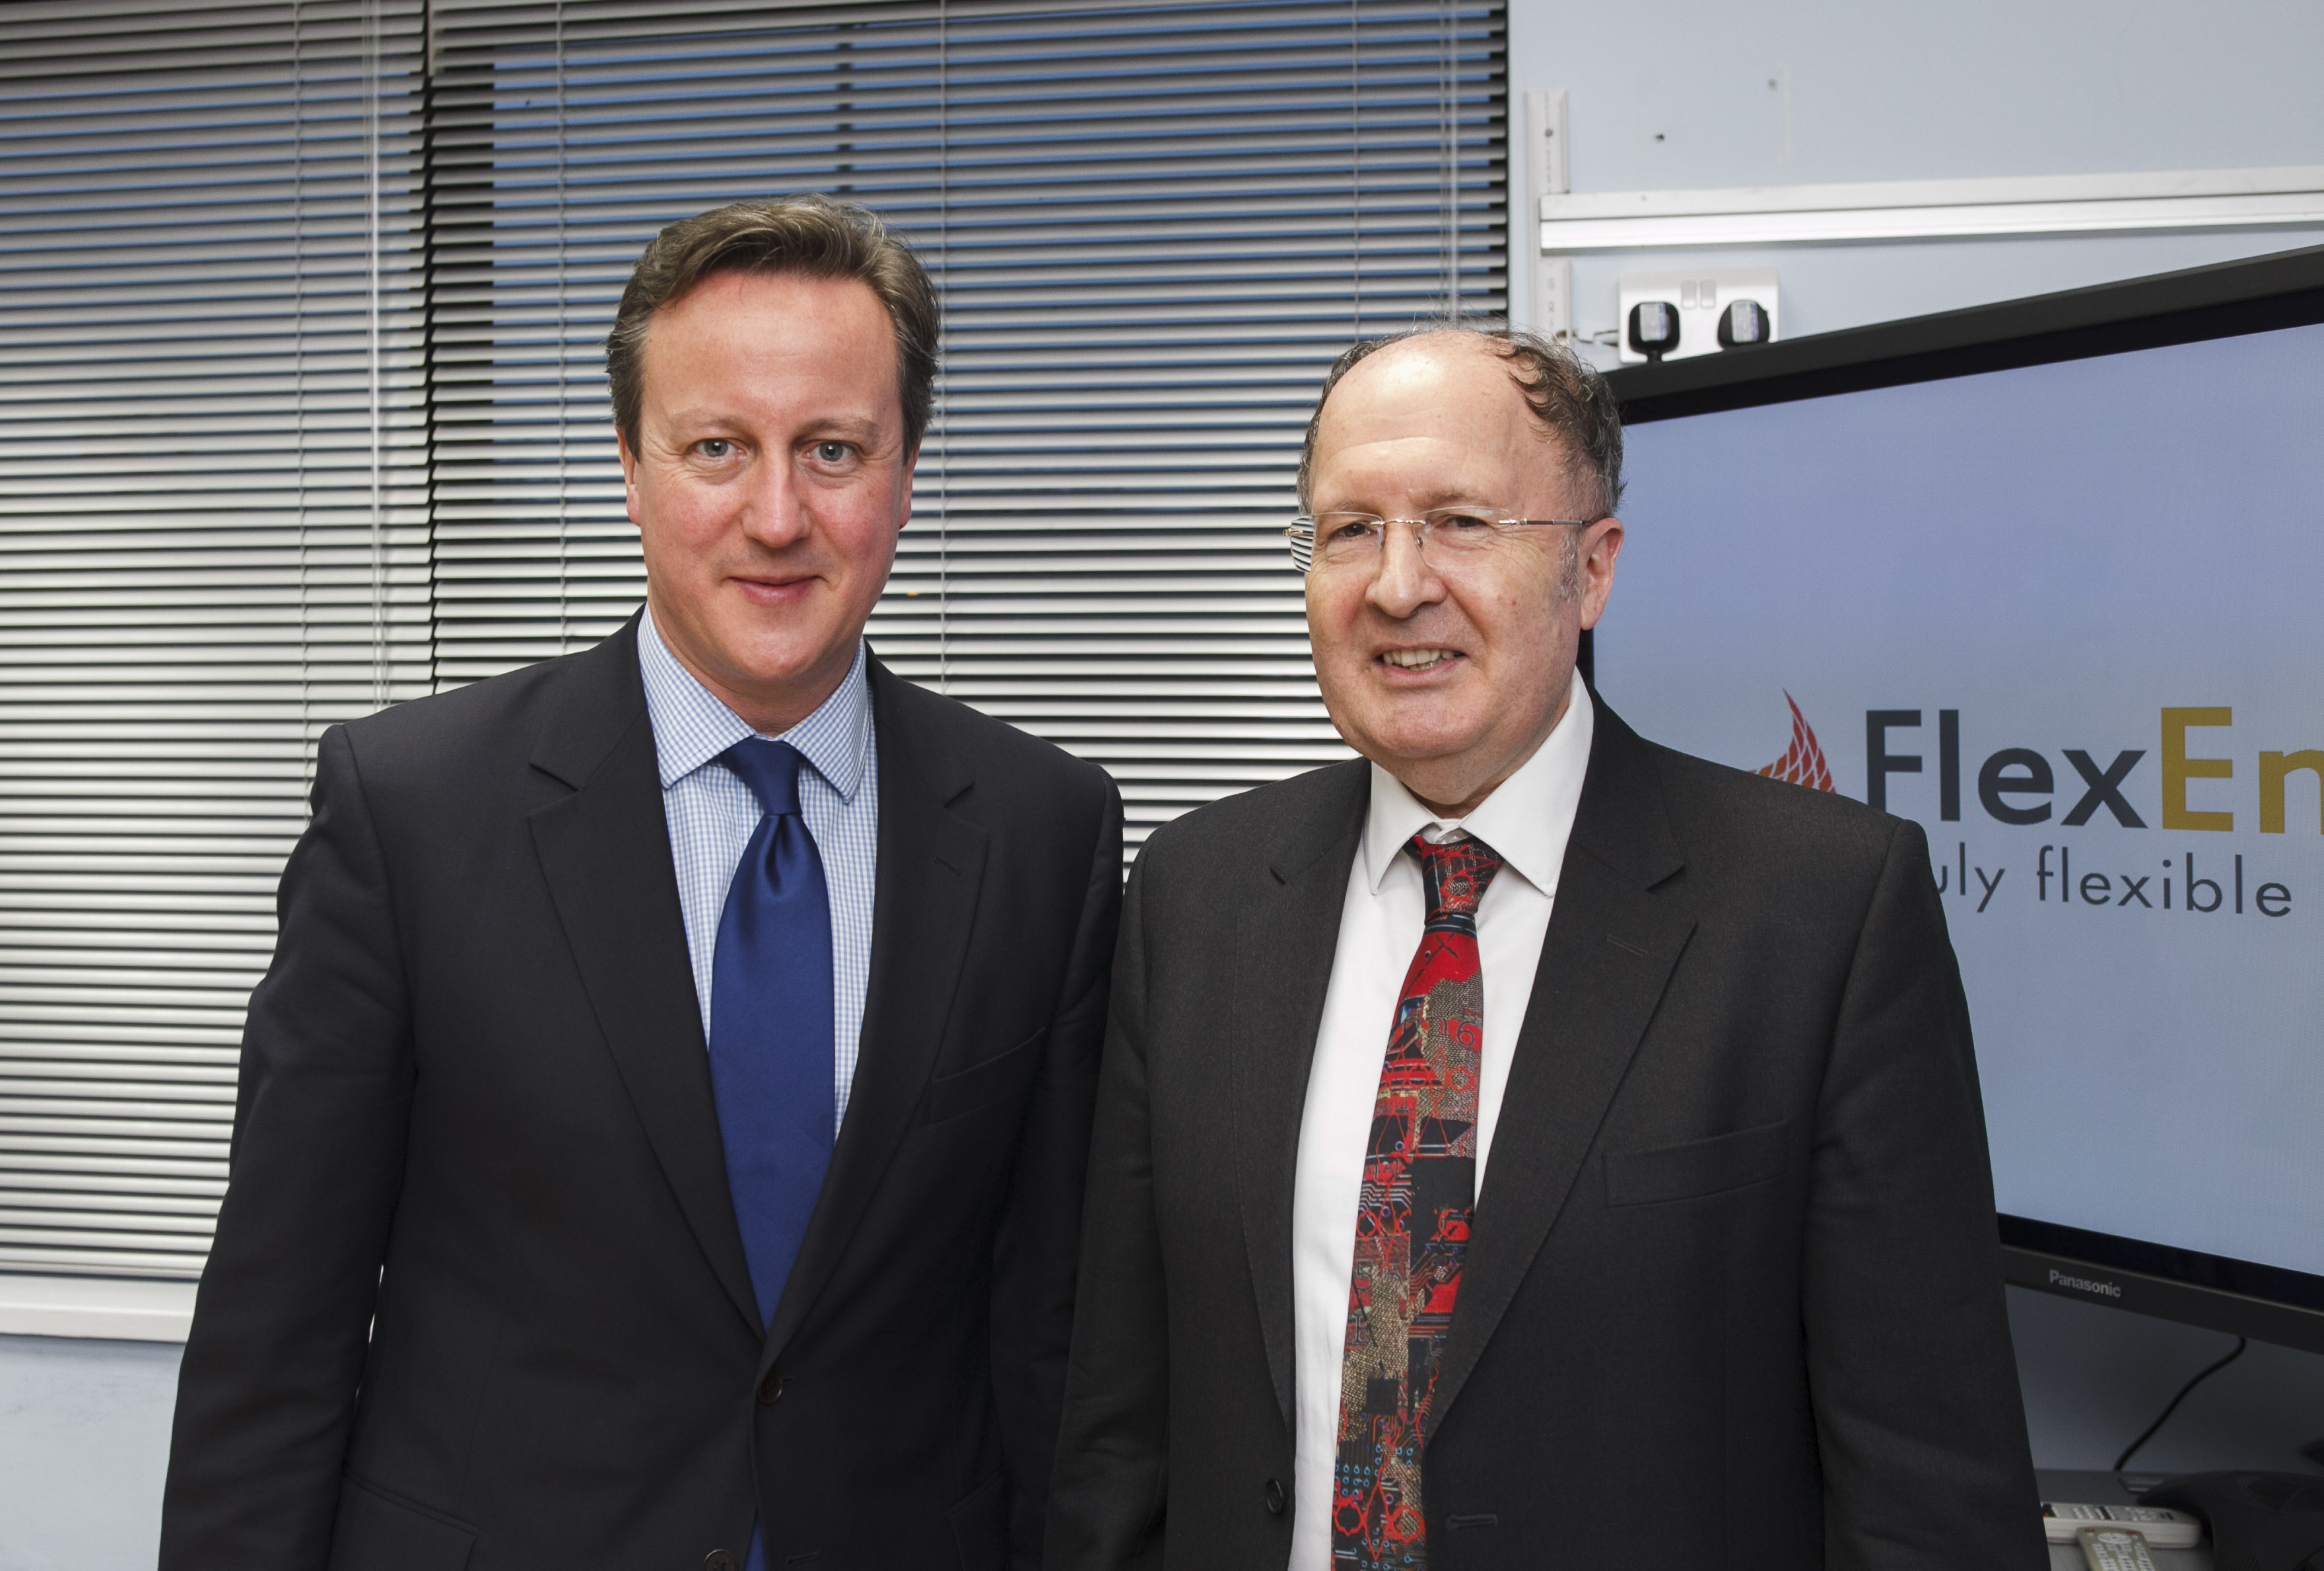 David cameron with sir gregory winter